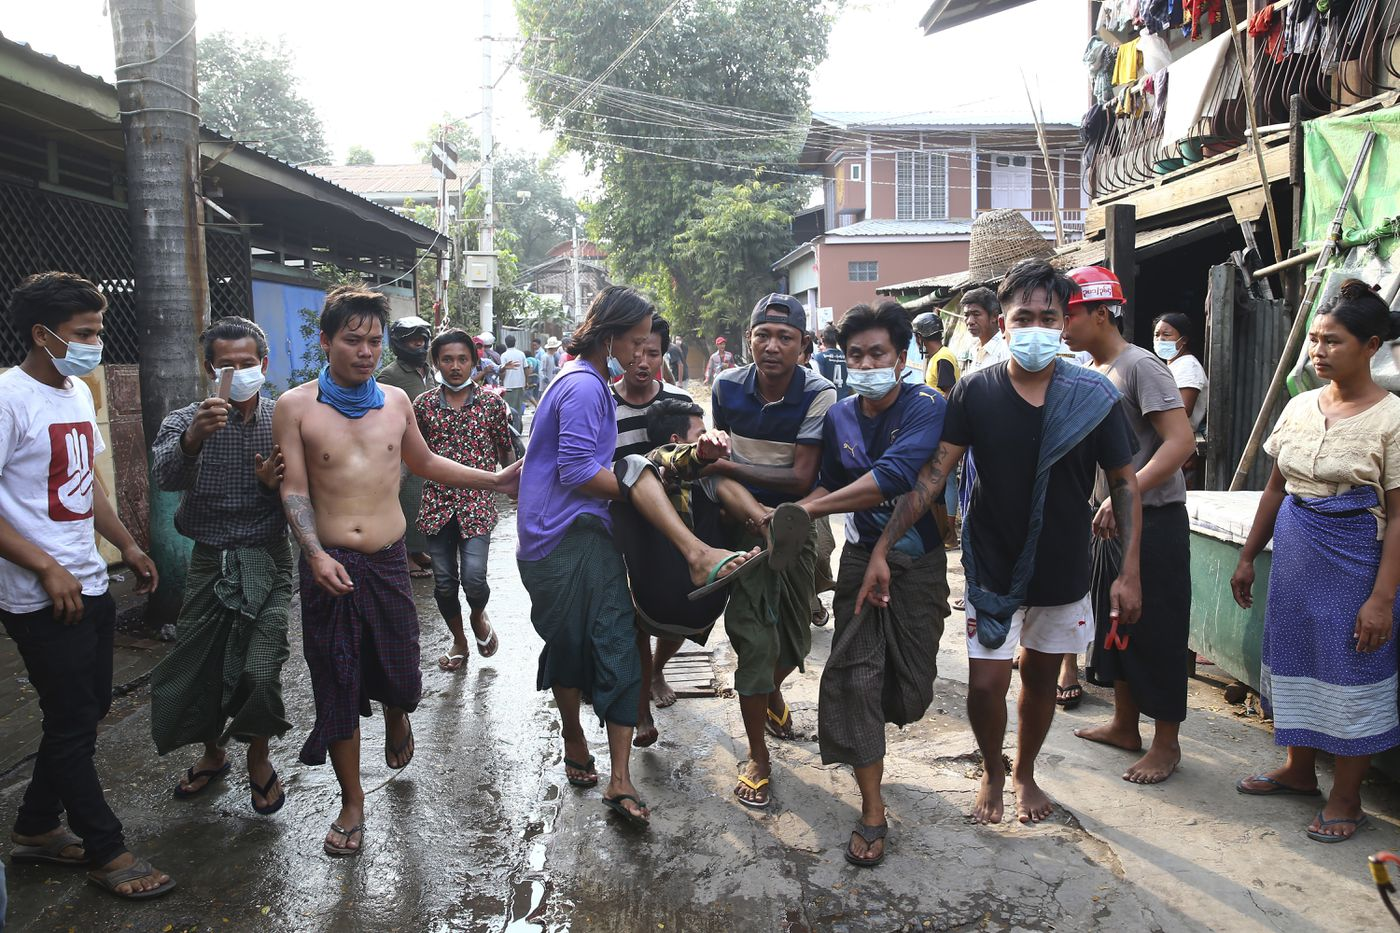 2 shot dead by Myanmar police during anti-coup protests, several injured: reports 1